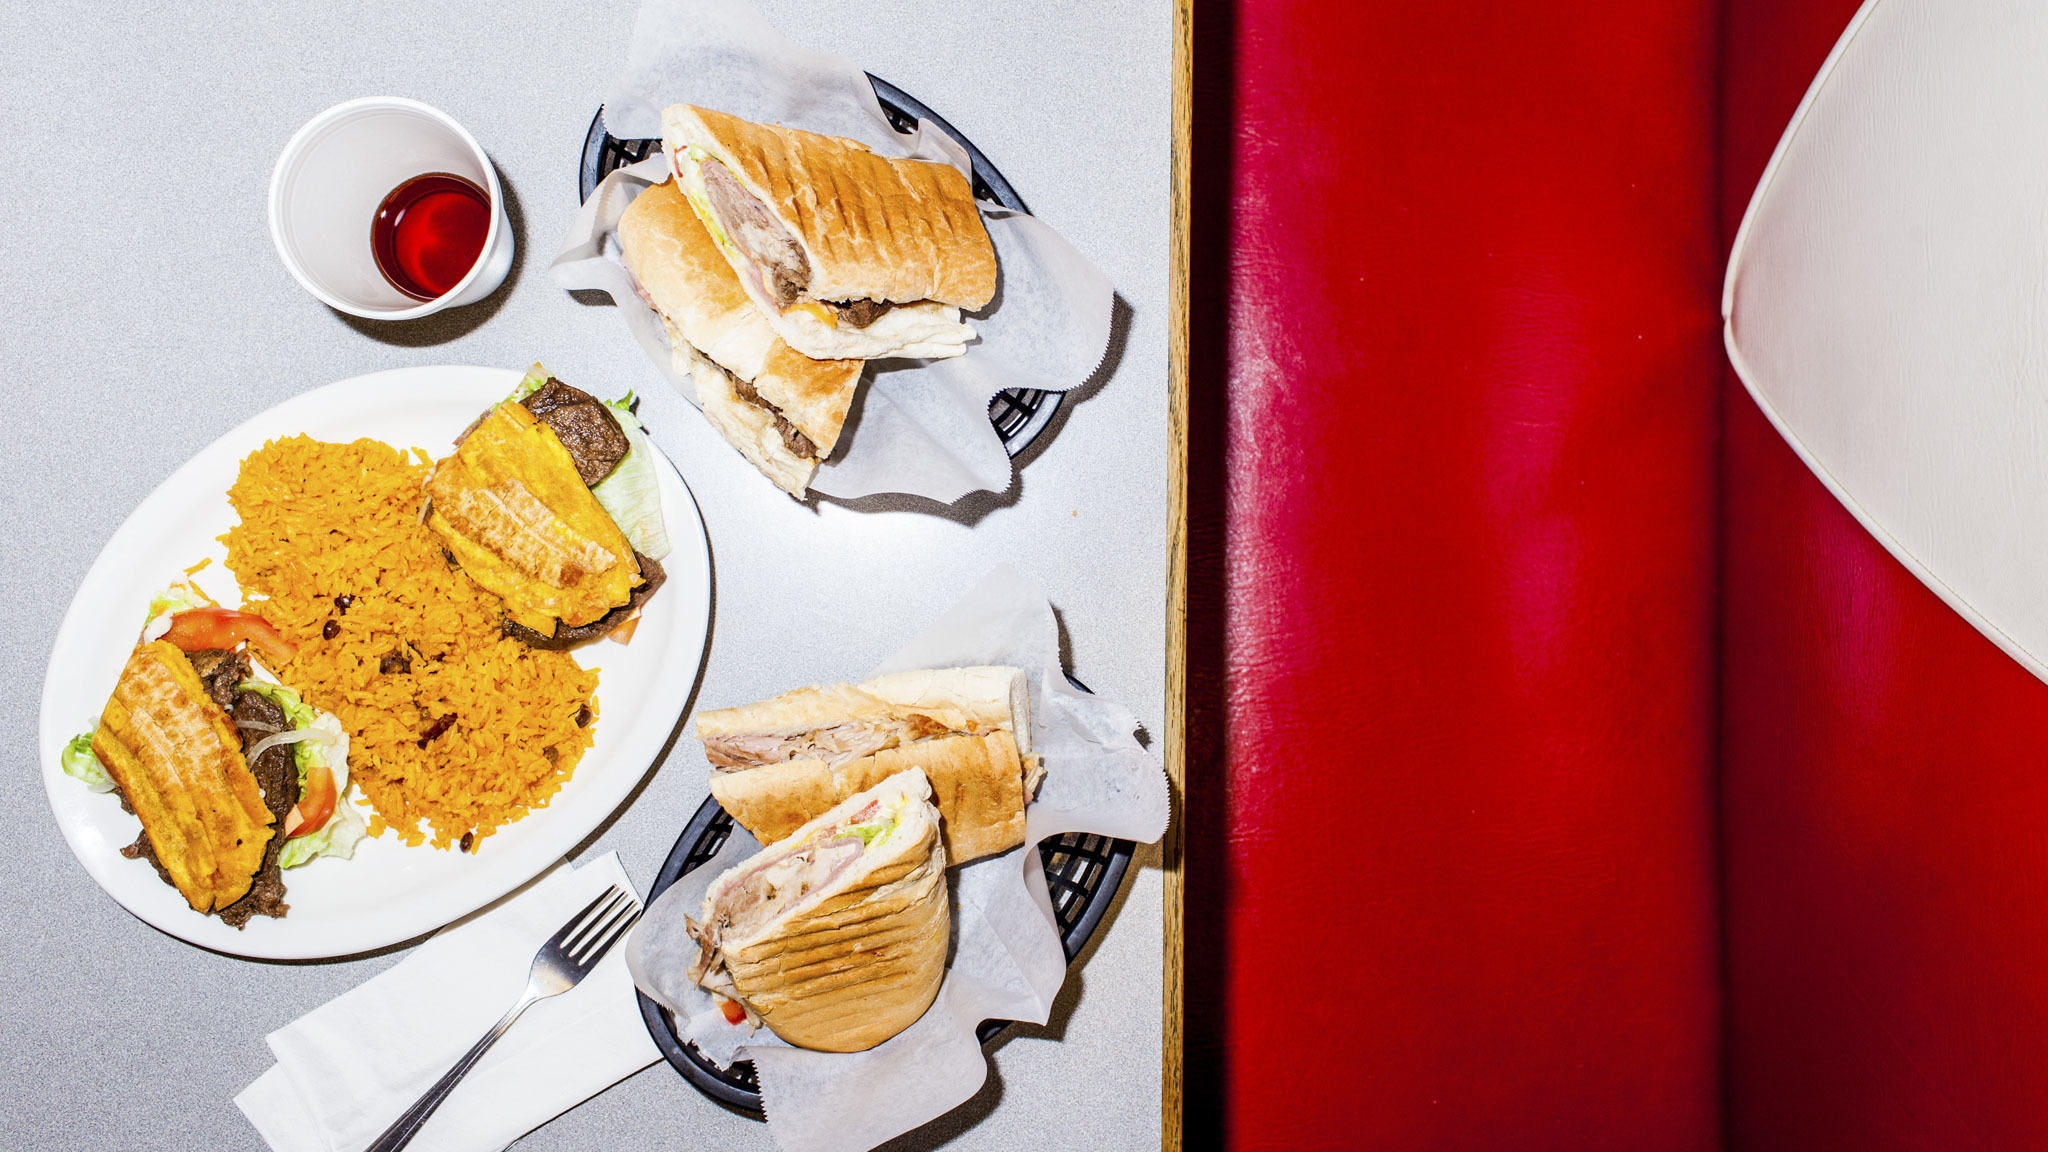 Best restaurants in Humboldt Park